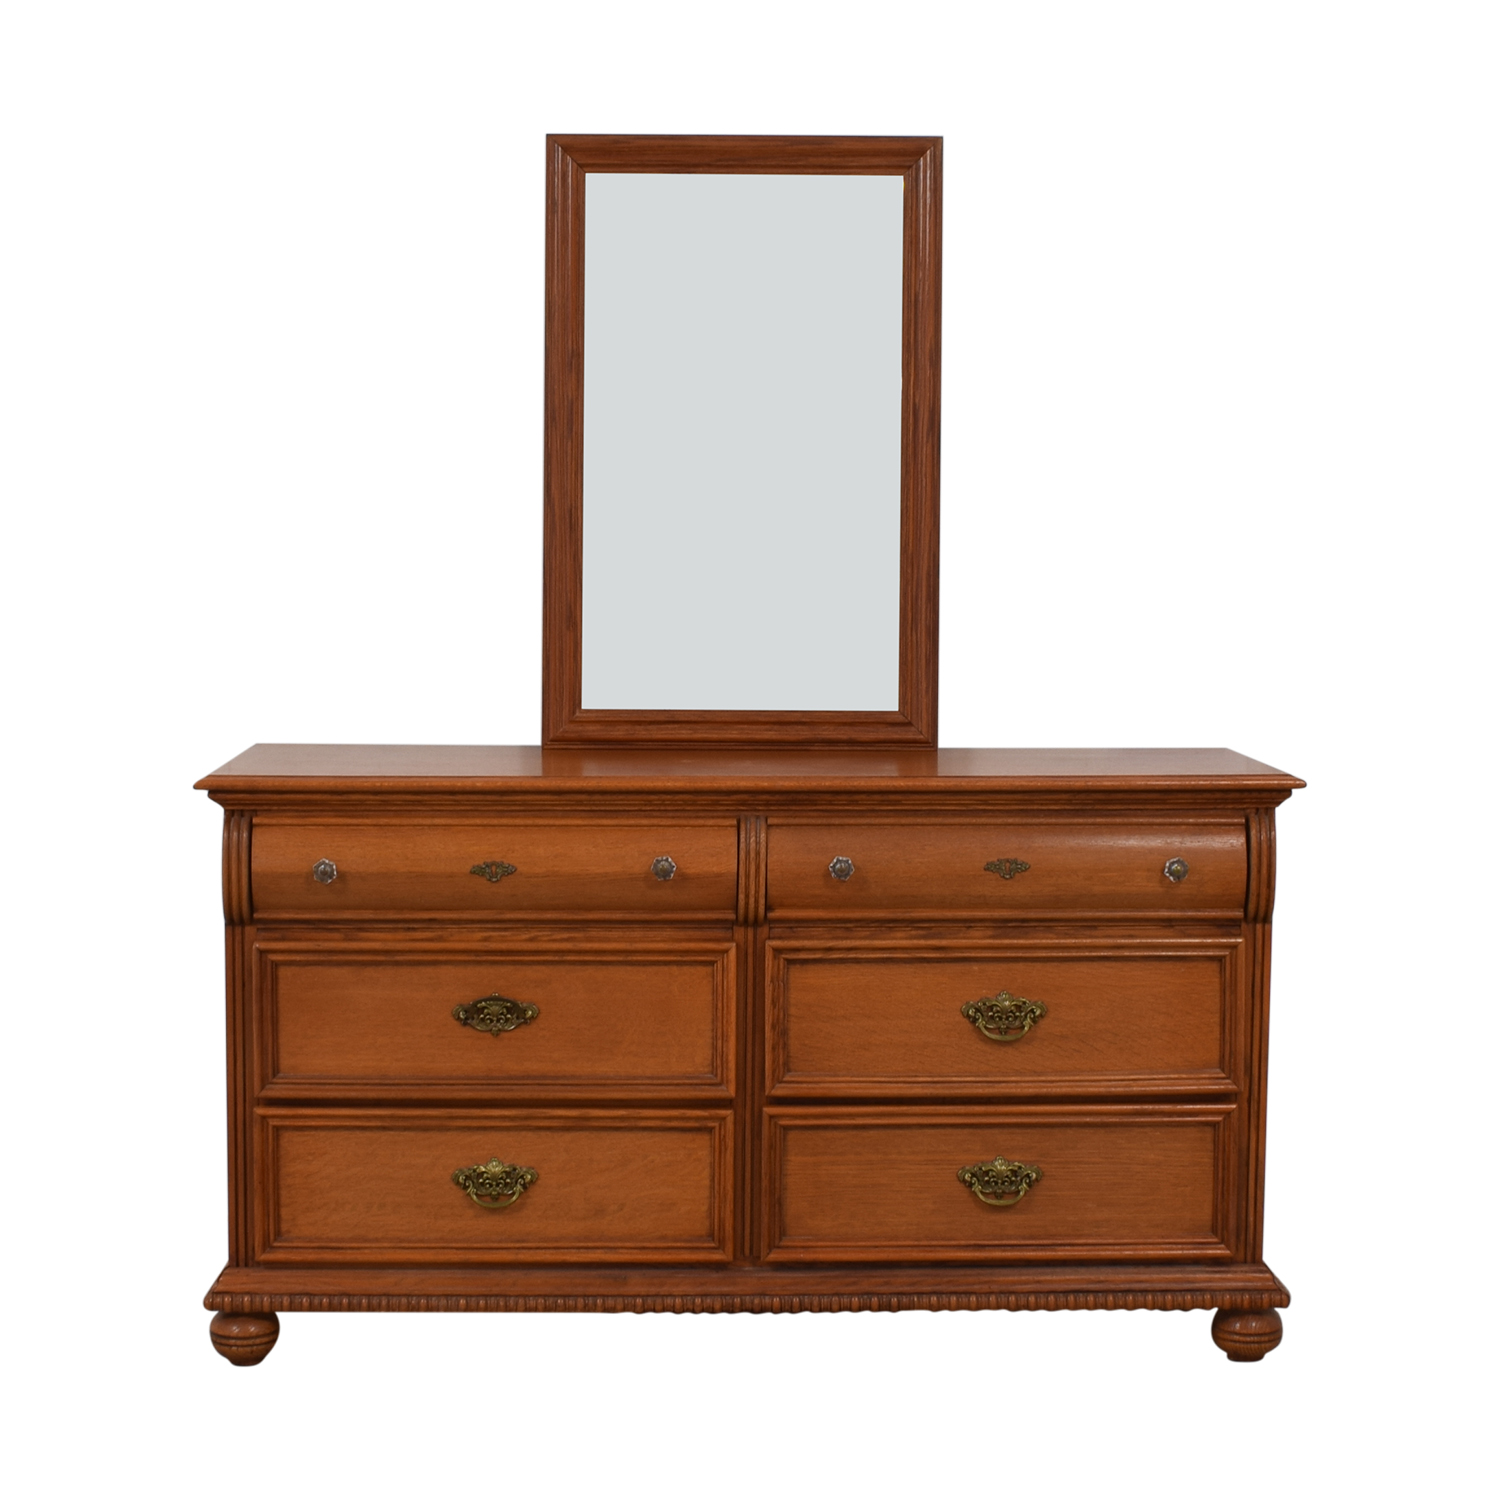 Lexington Furniture Lexington Furniture Six-Drawer Dresser With Mirror discount